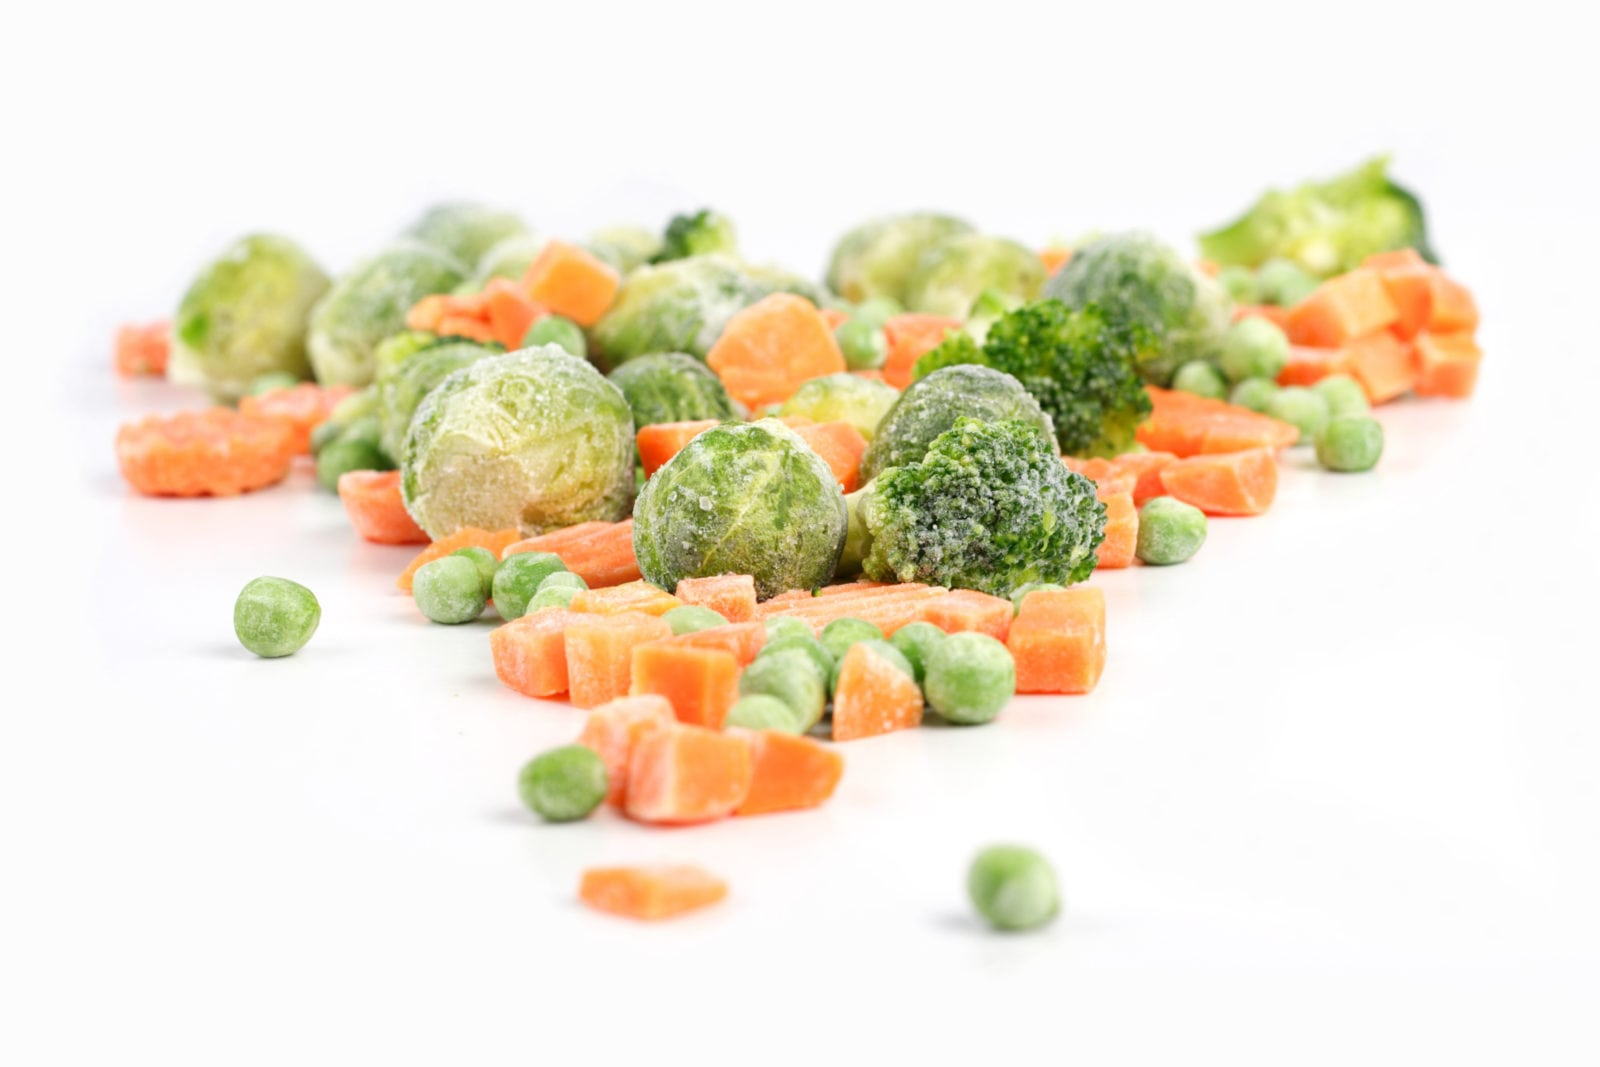 When is it safe to freeze frozen foods that are about to expire?